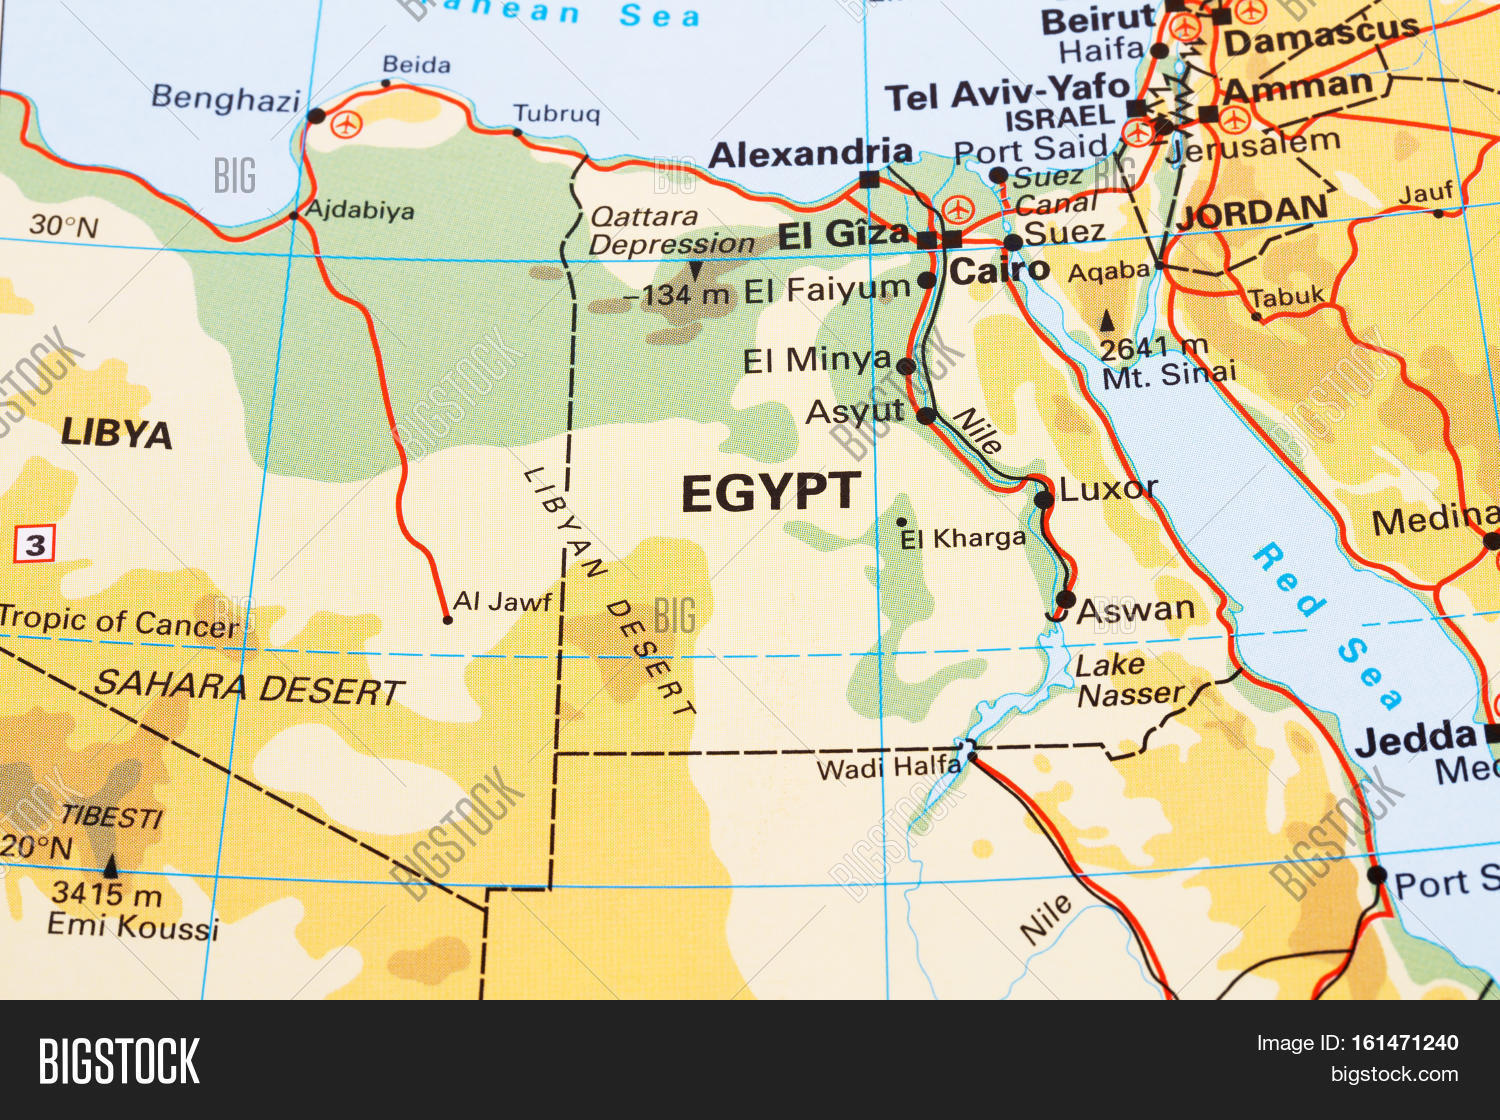 Egypt physical map image photo free trial bigstock egypt physical map horizontal close up picture gumiabroncs Gallery